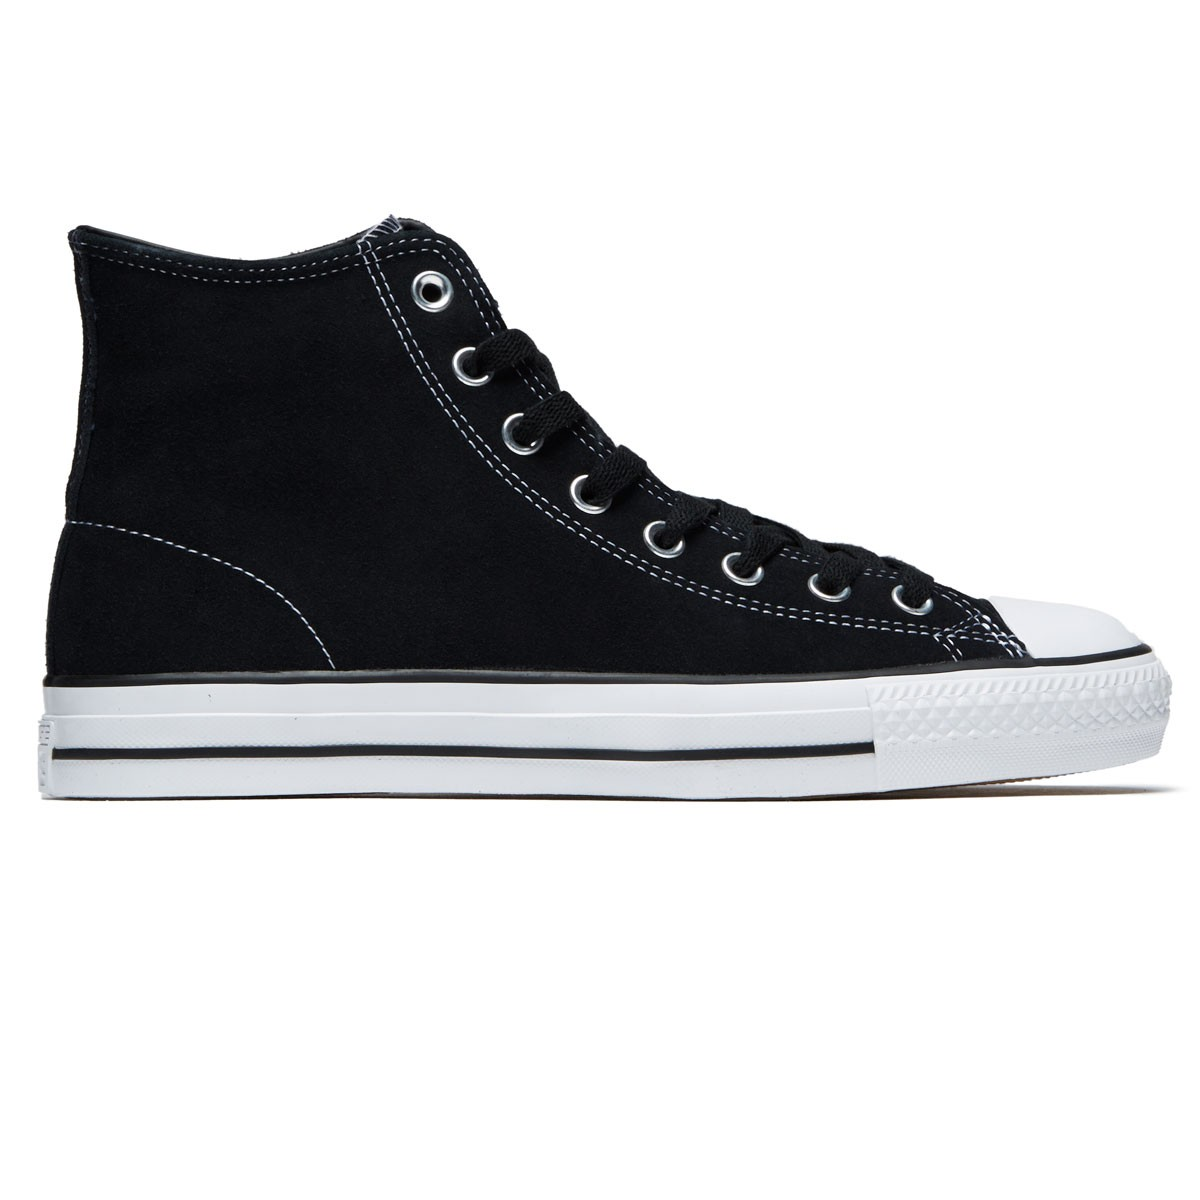 94e06be722f5 Converse Zoom Air CTAS Pro Hi Shoes - Black Black White - 10.0